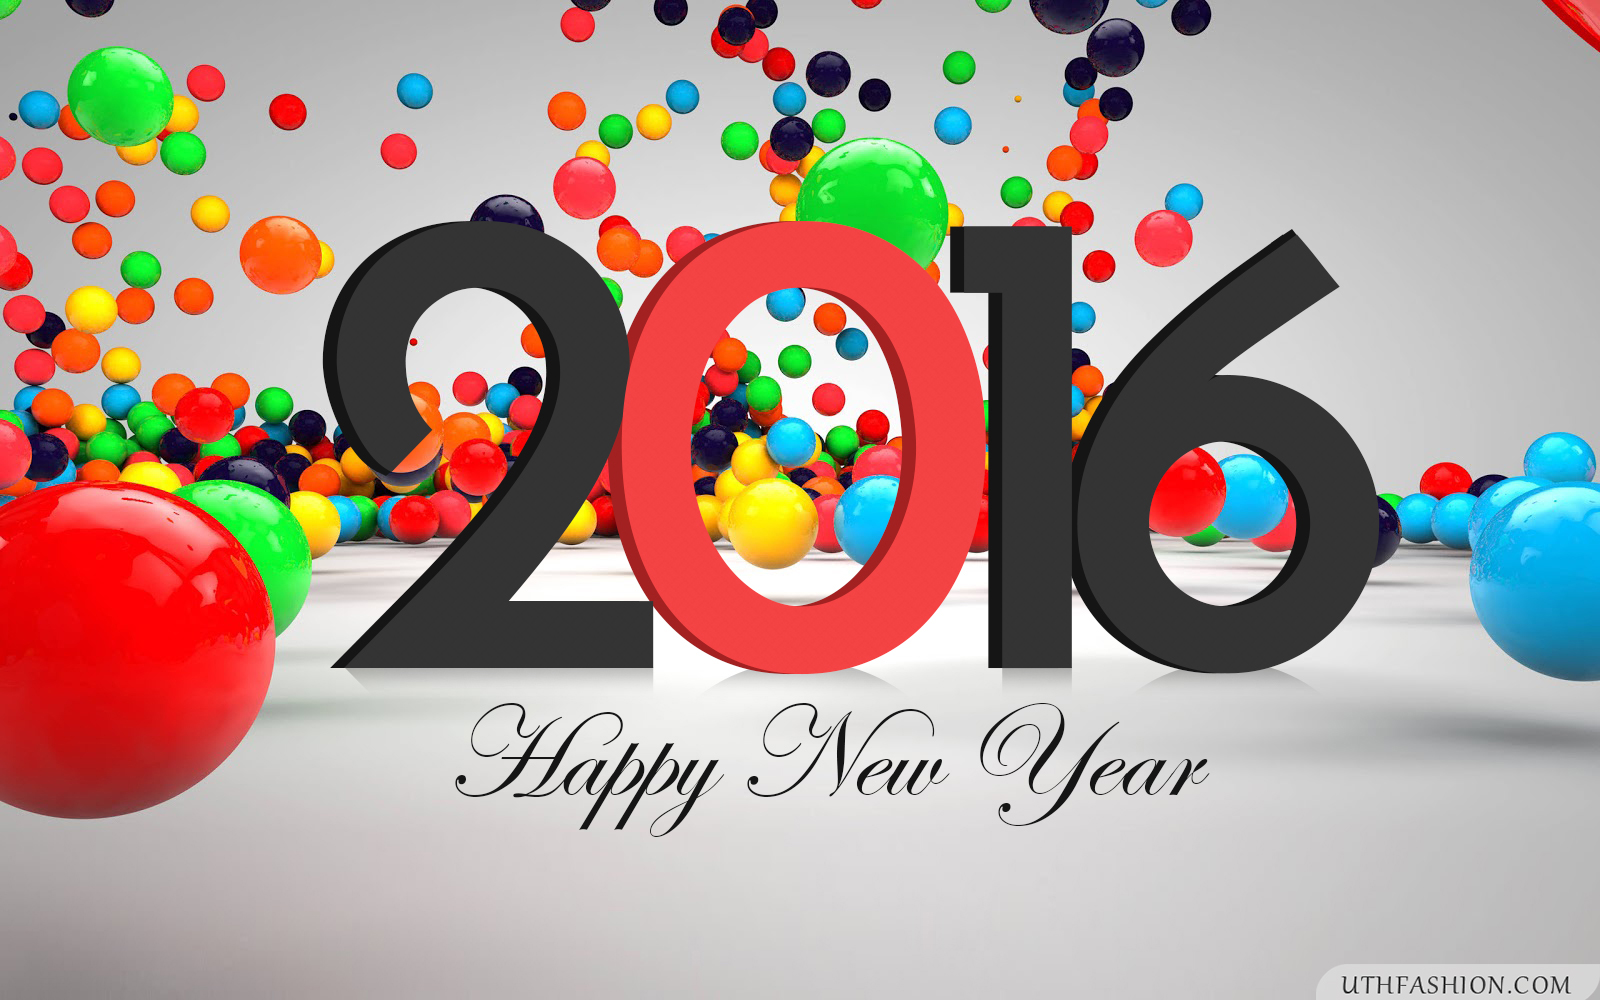 Wallpaper download new year 2016 - Wallpaper Download New Year 2016 30